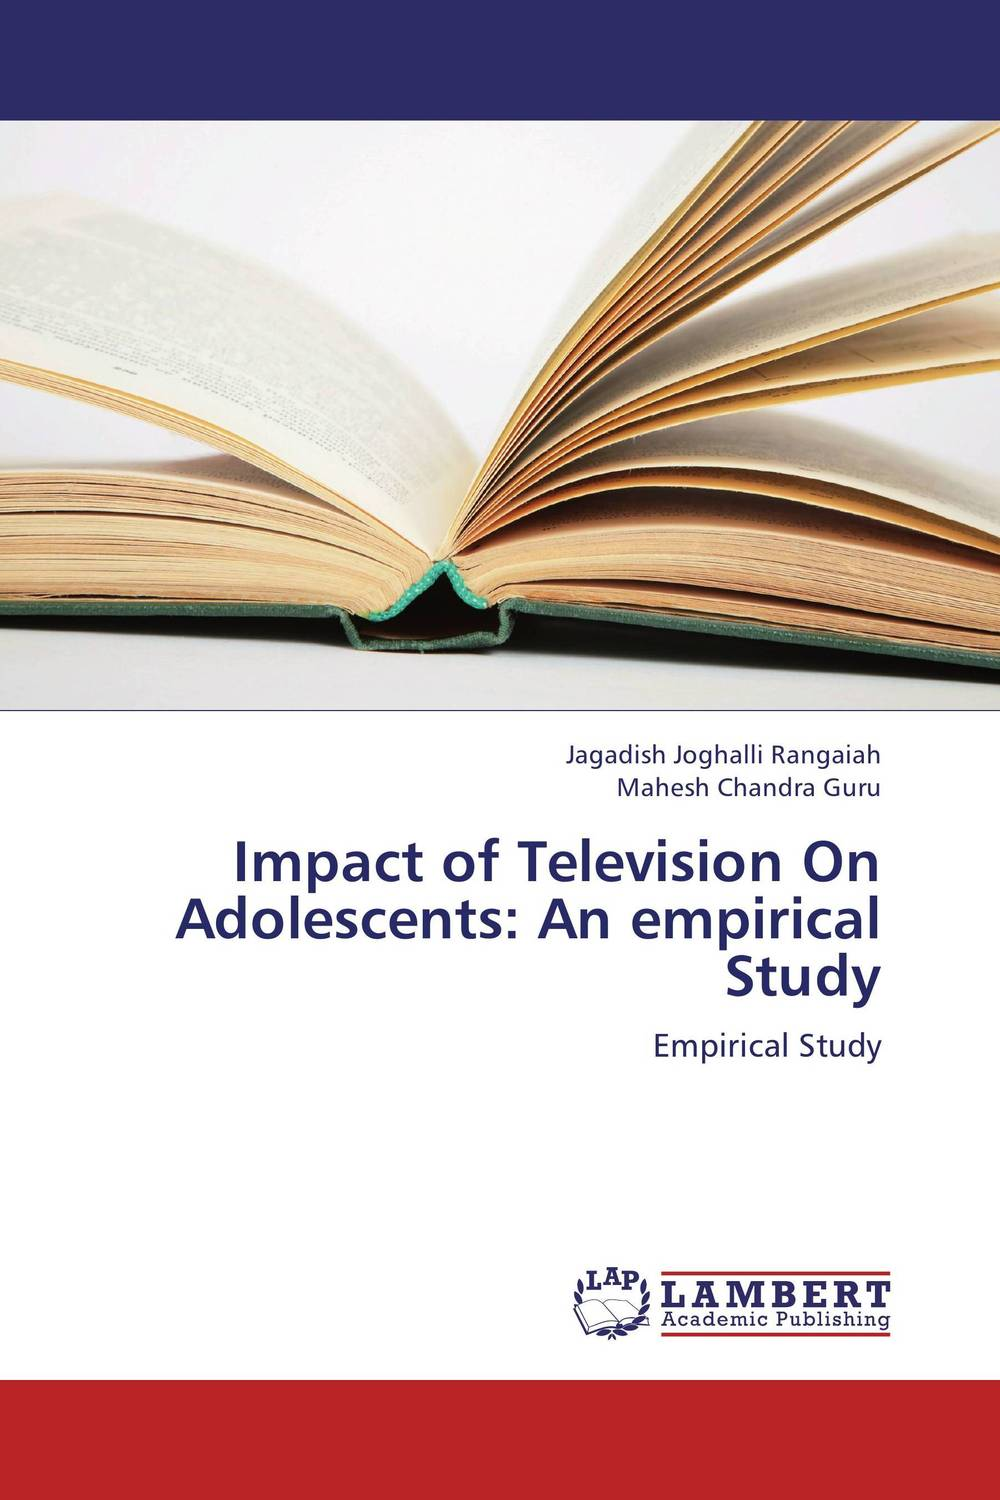 Impact of Television On Adolescents: An empirical Study